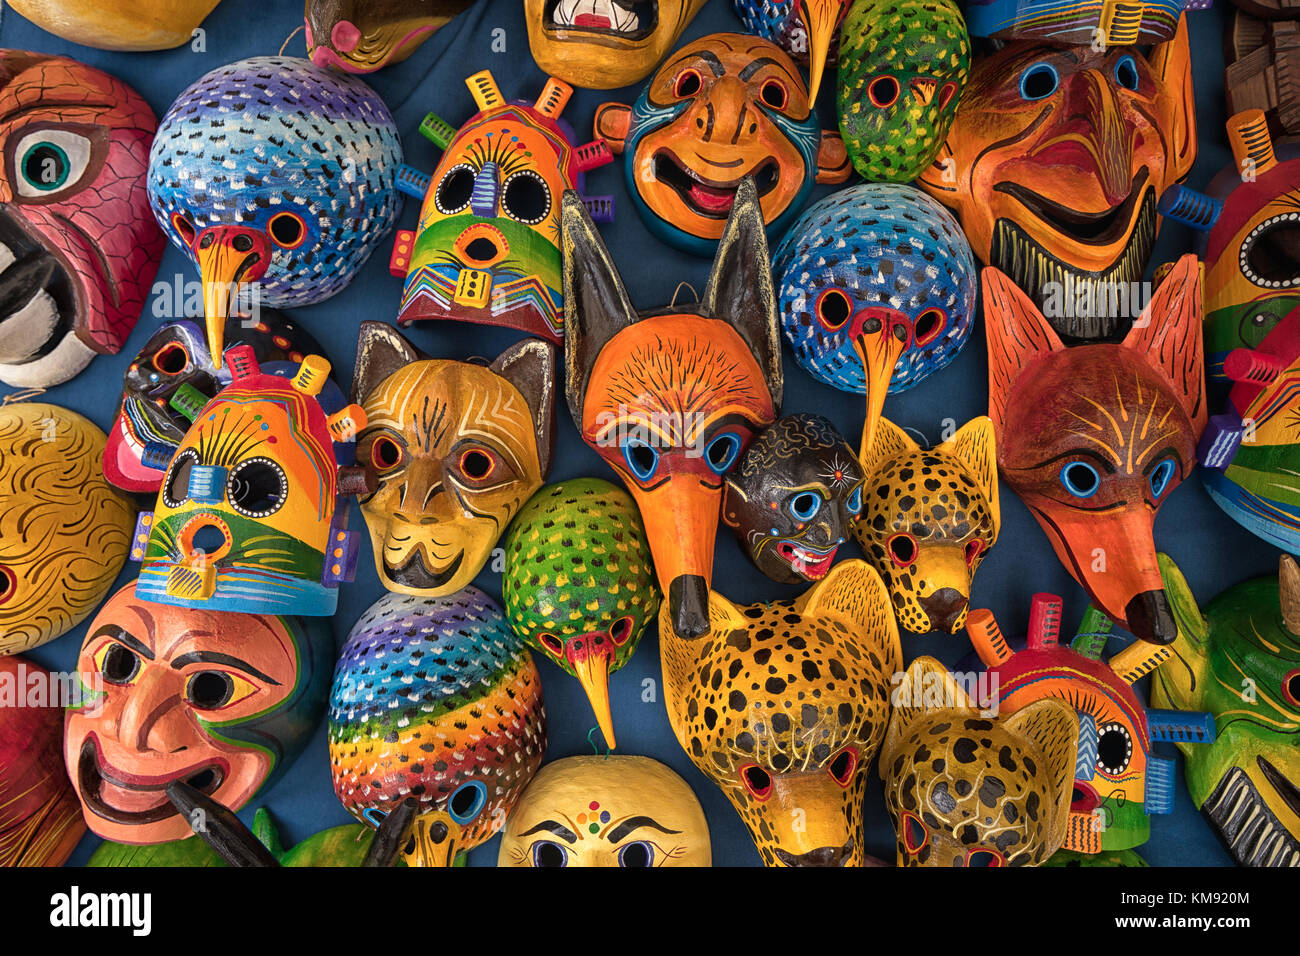 Otavalo, Ecuador - December 2, 2017: closeup of colourful indigenous wood carvings in the Saturday artisan market - Stock Image